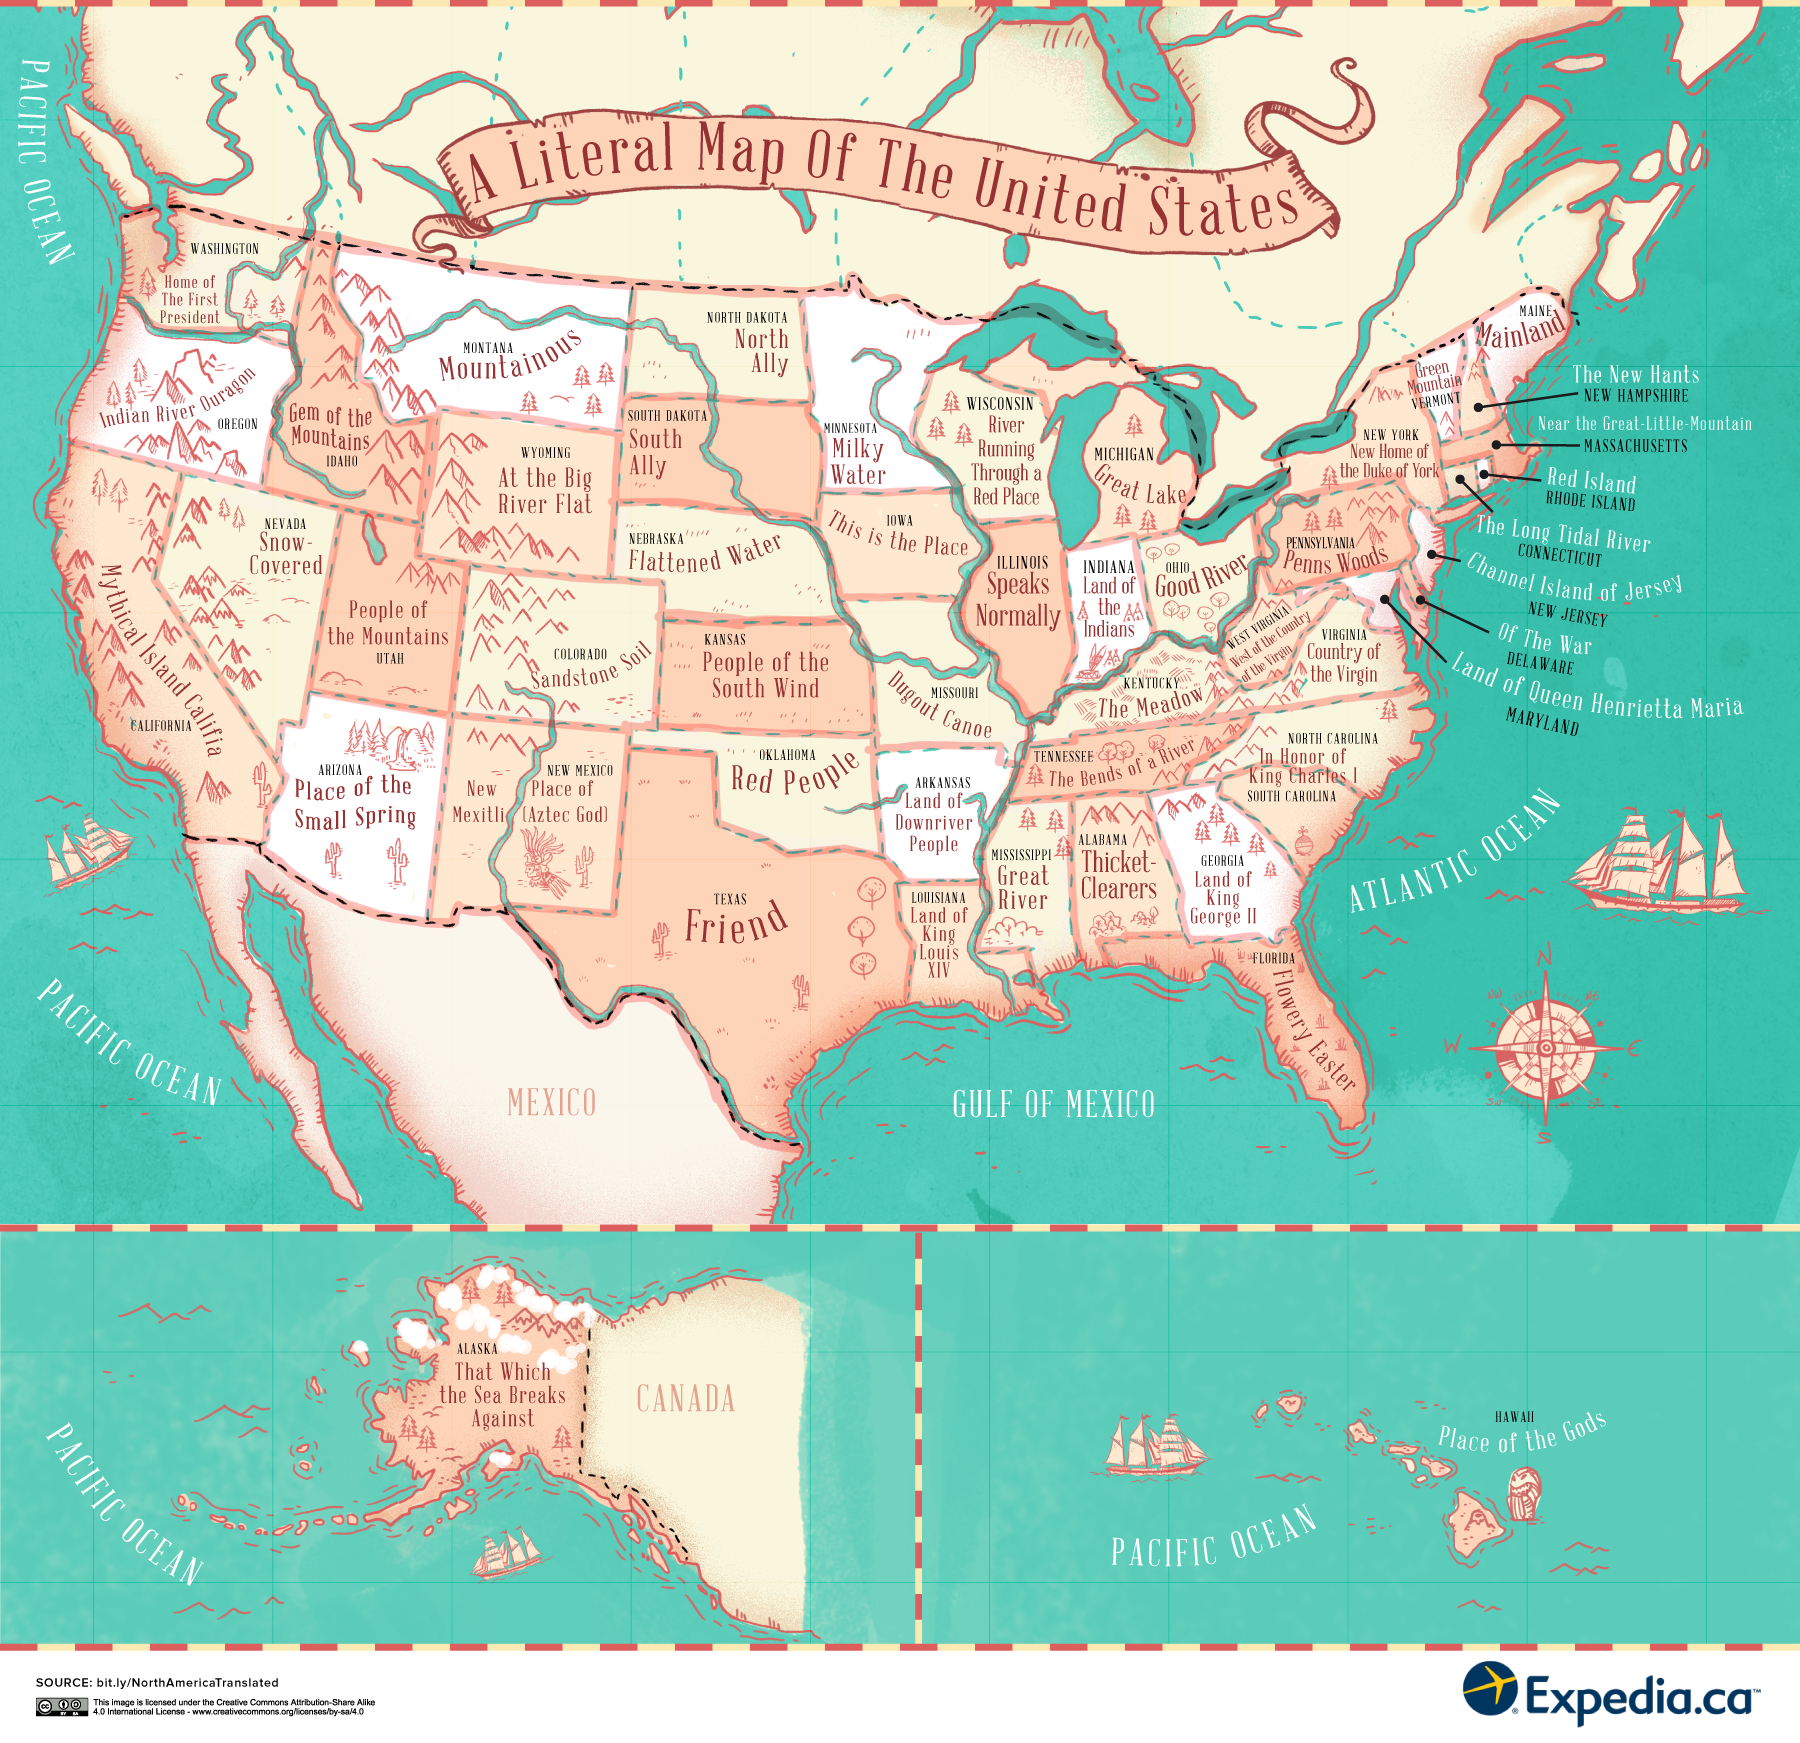 Map Of Canada And United States With Names This fascinating map reveals the meaning behind place names in the